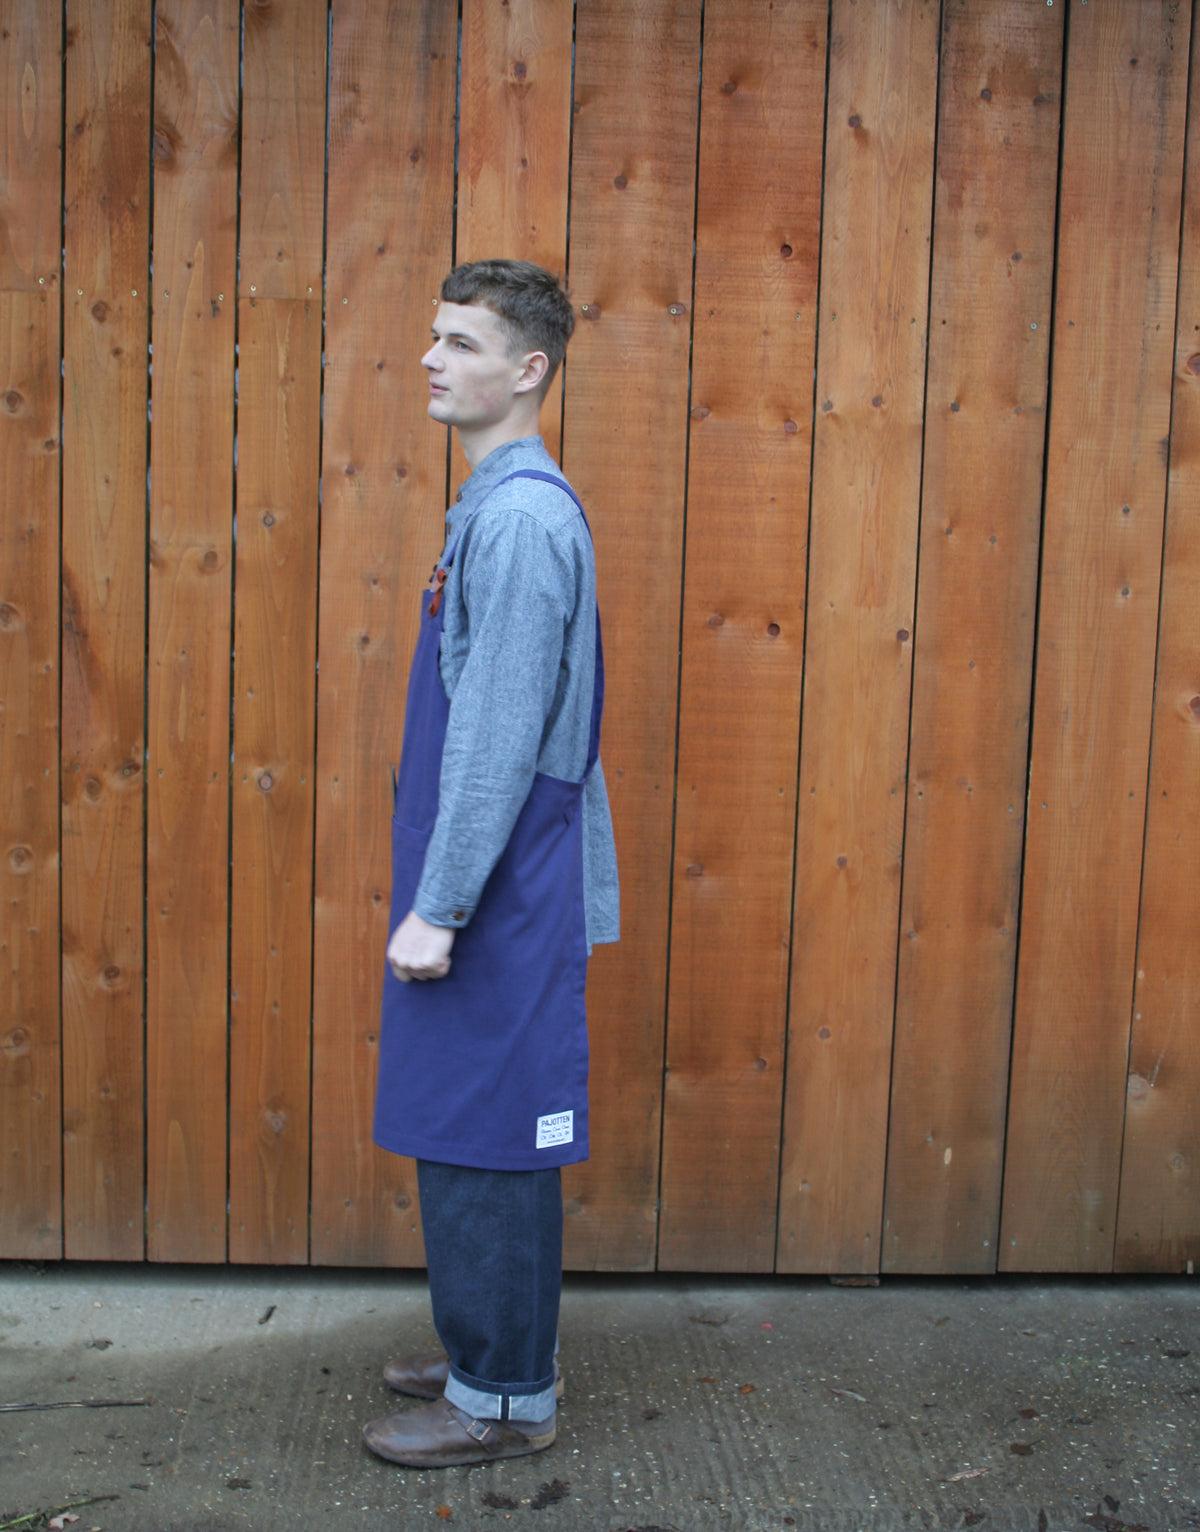 side v new of man wearing indigo apron against a wooden wall